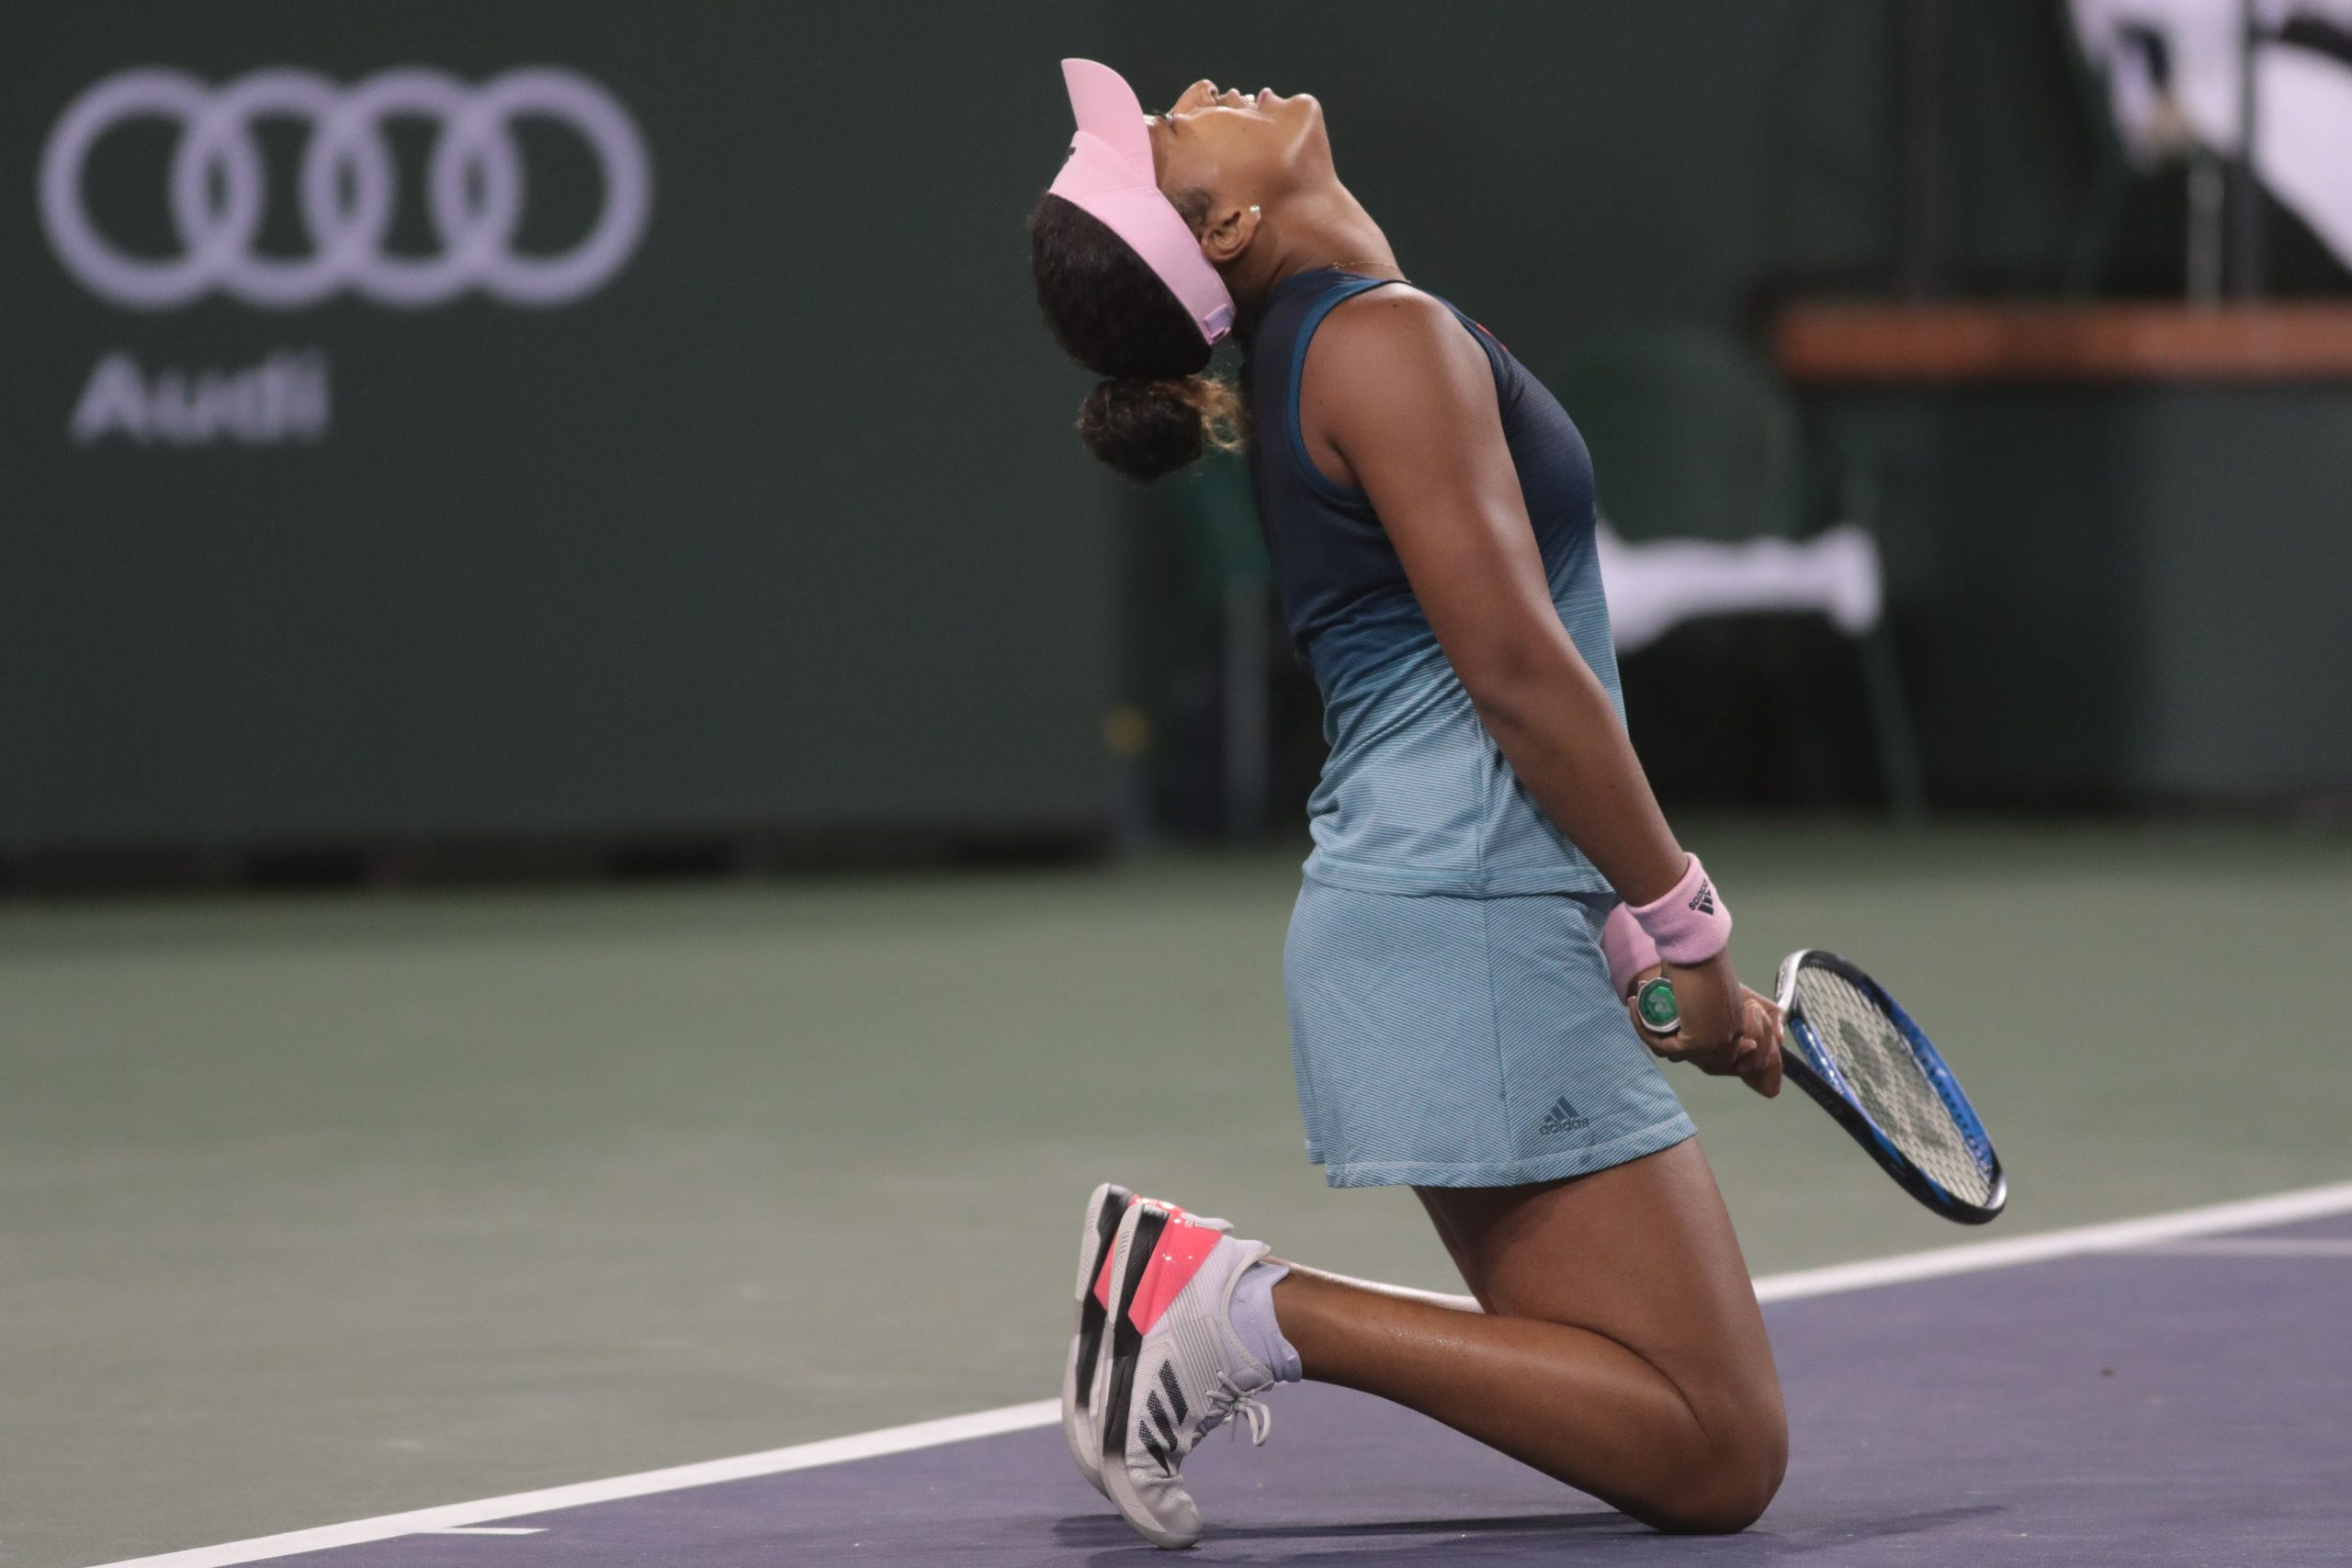 Naomi Osaka reacts to missing a shot from Kristina Mladenovic at the BNP Paribas Open, Indian Wells, Calif., March 9, 2019.